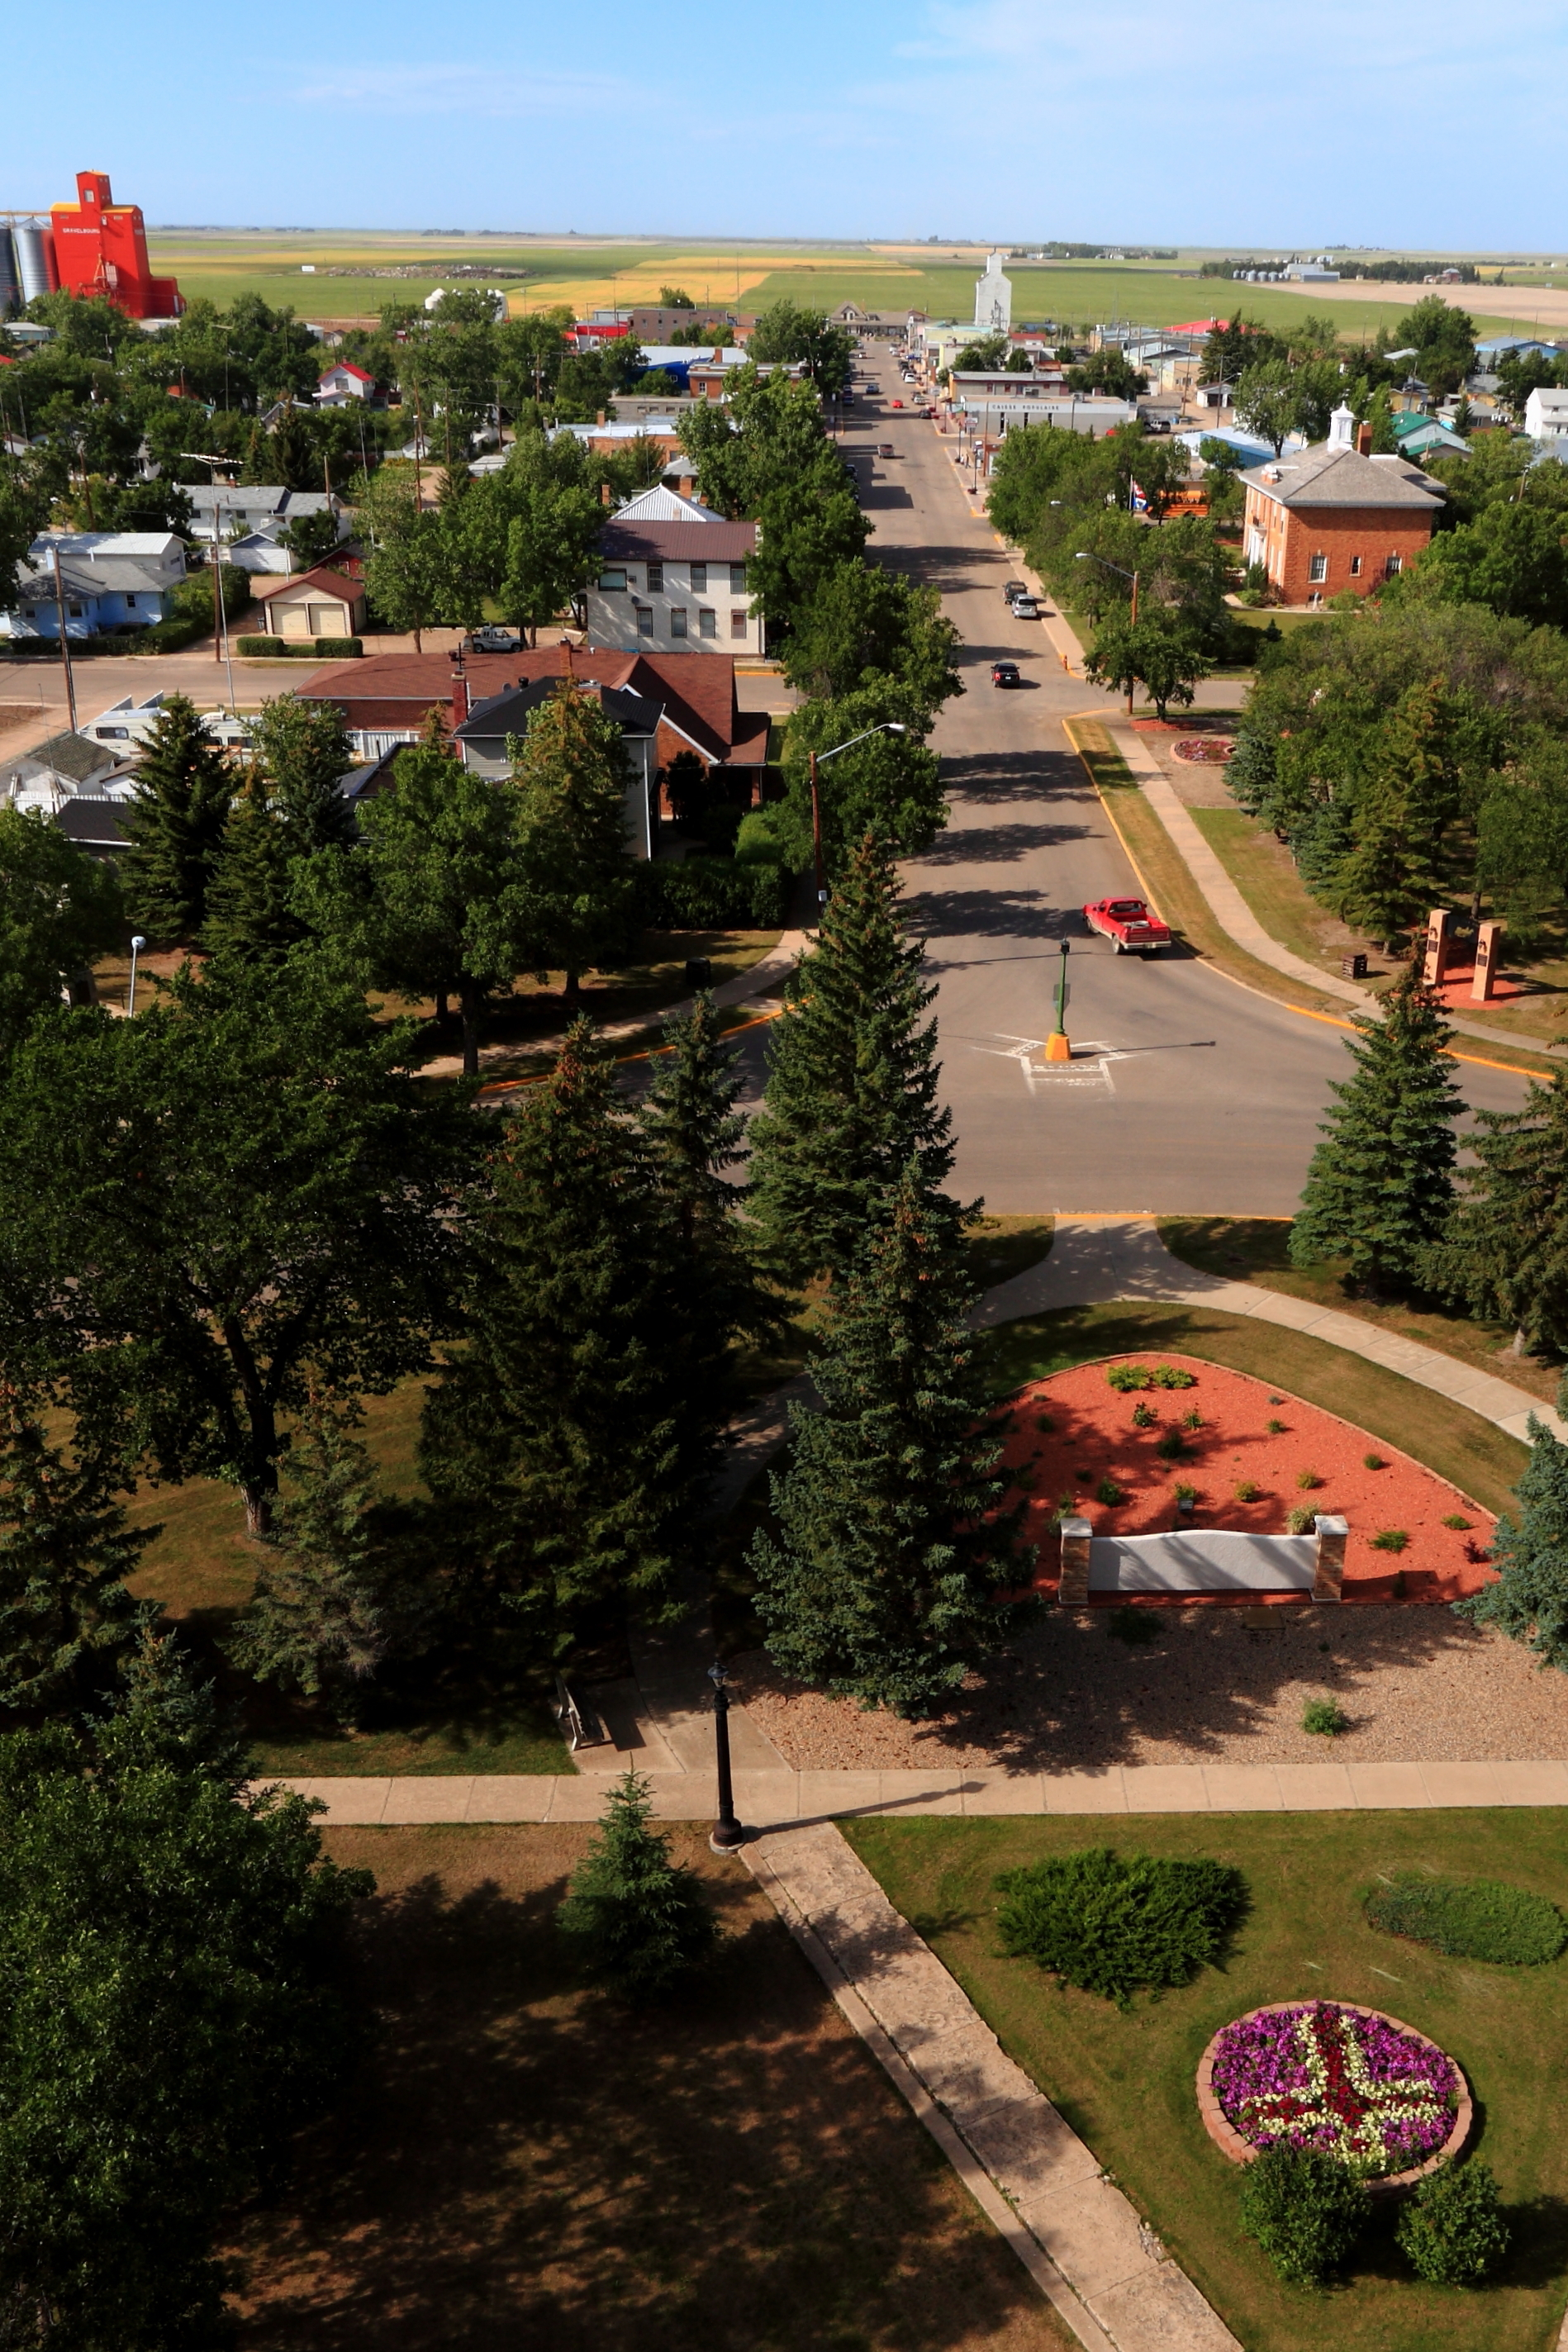 Village de Gravelbourg photo: Daniel Paquet